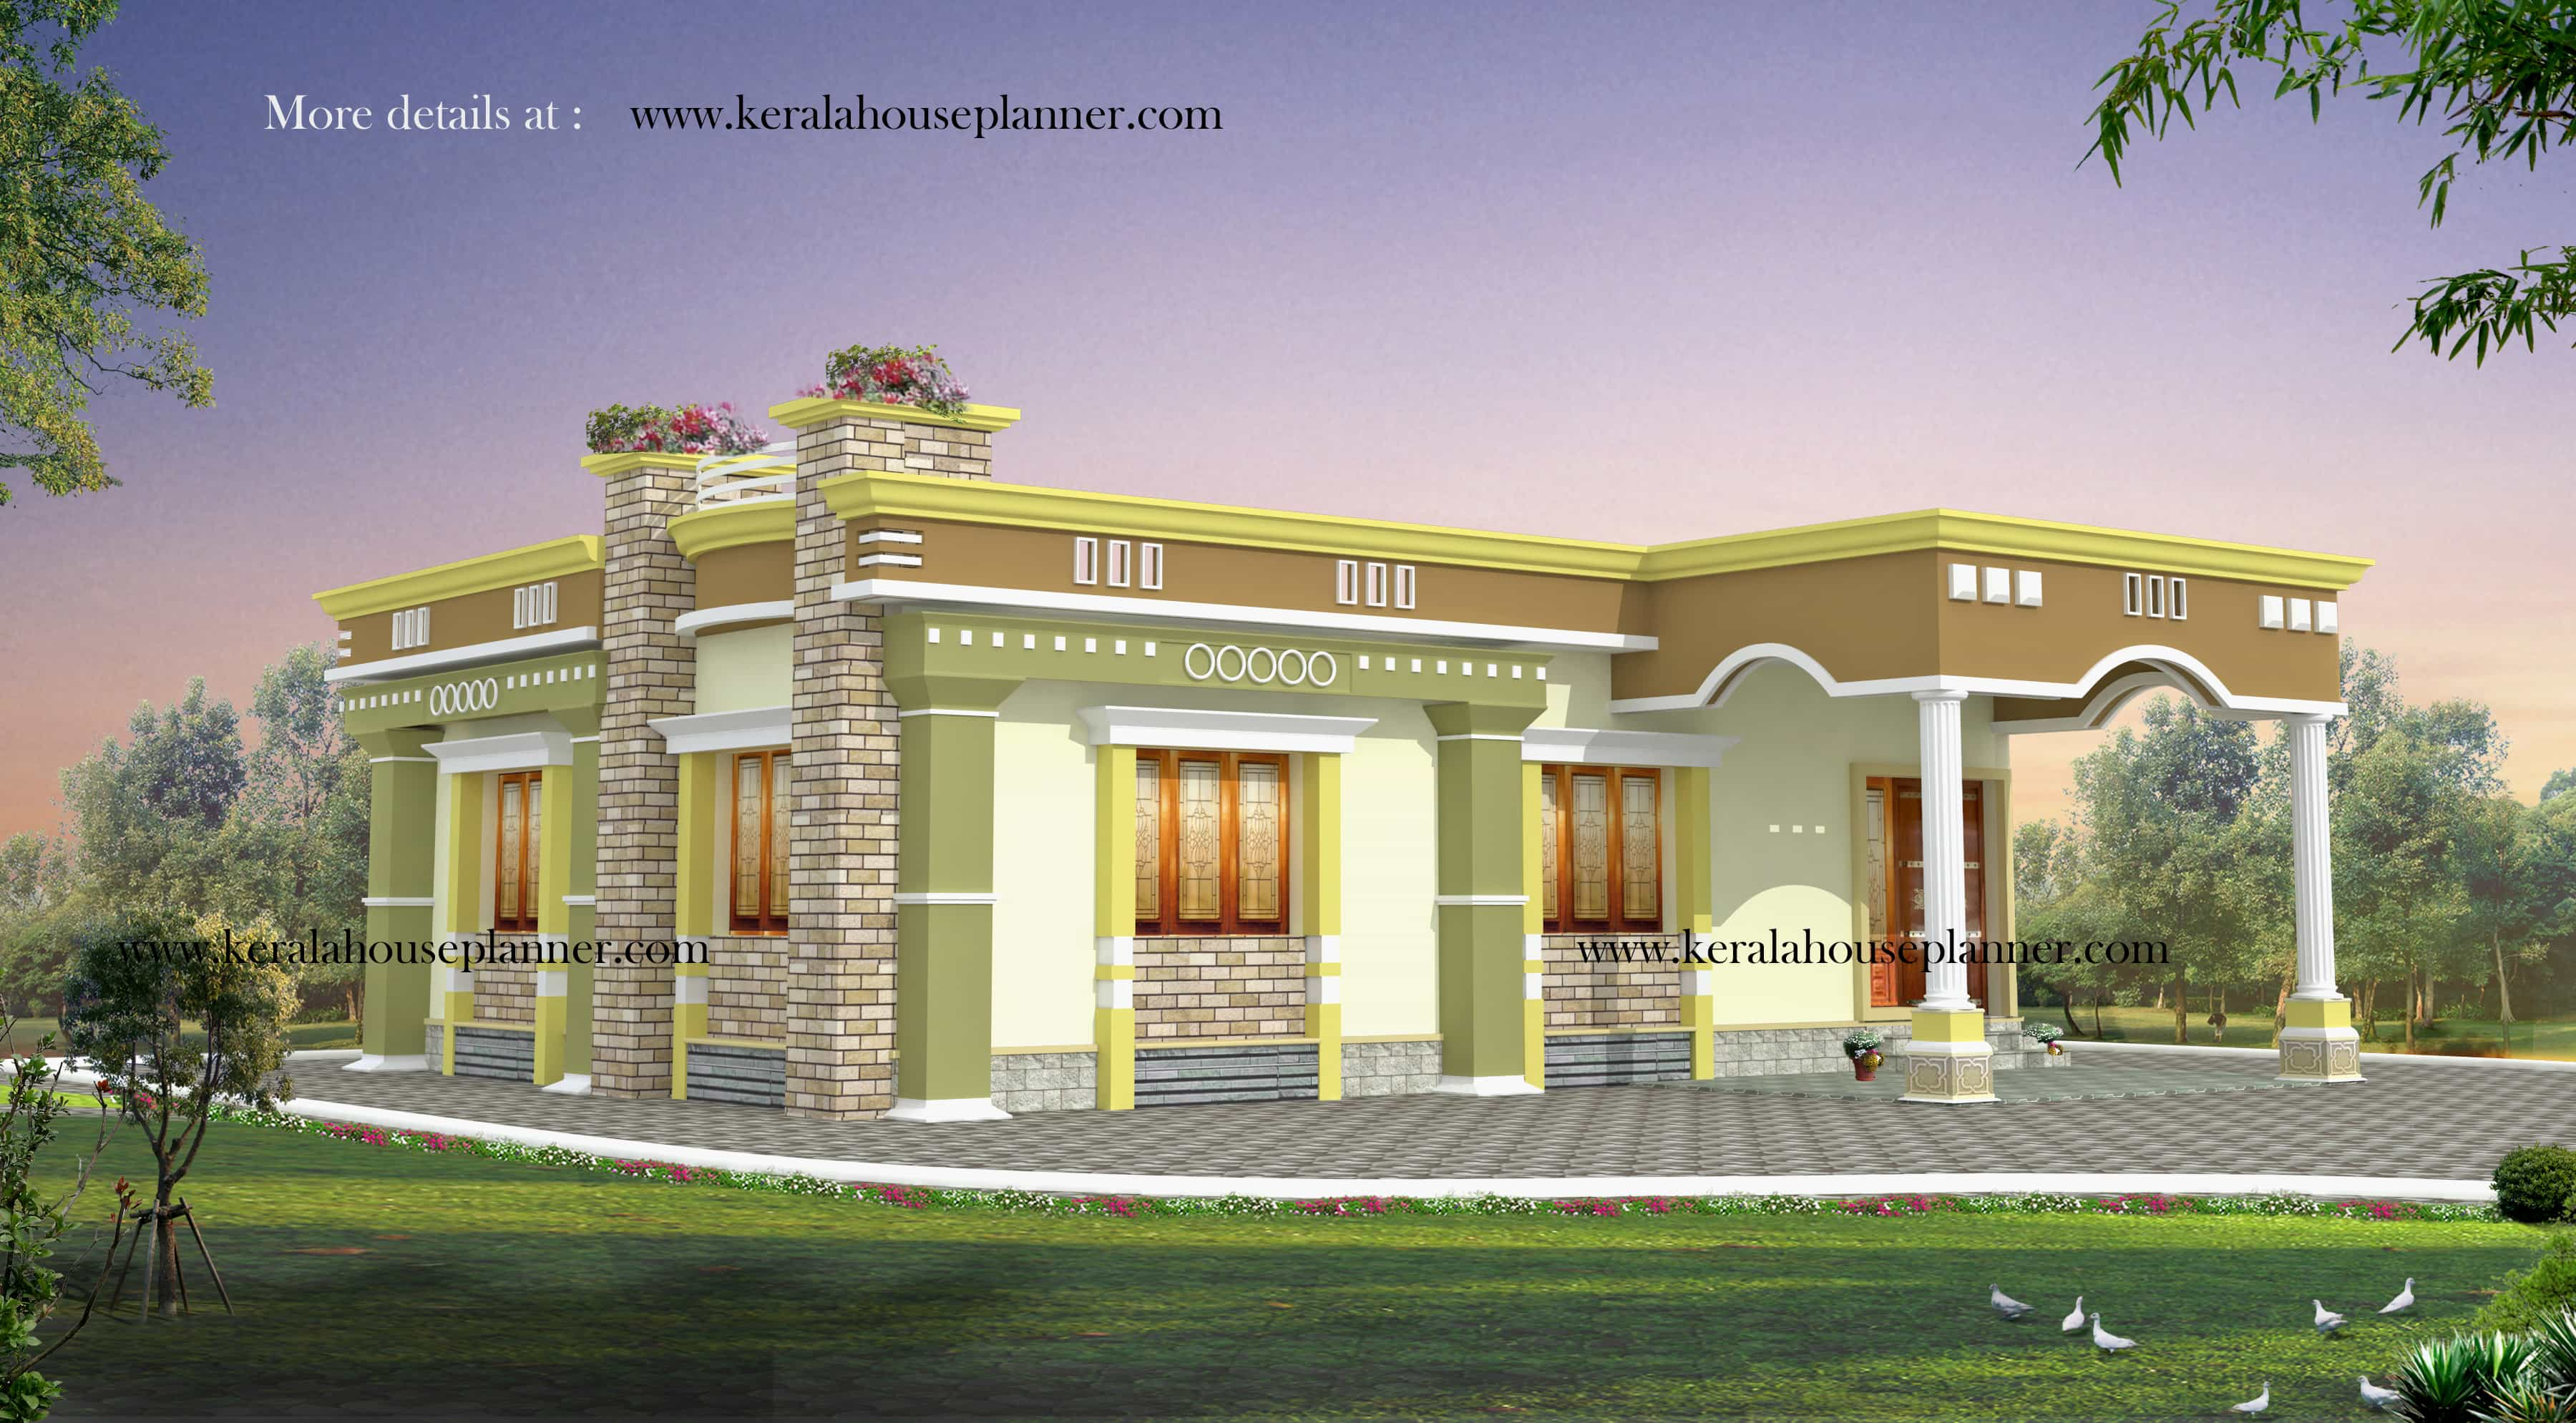 Single Floor House Designs   Kerala House PlannerKerala House Plans sq ft   Photos